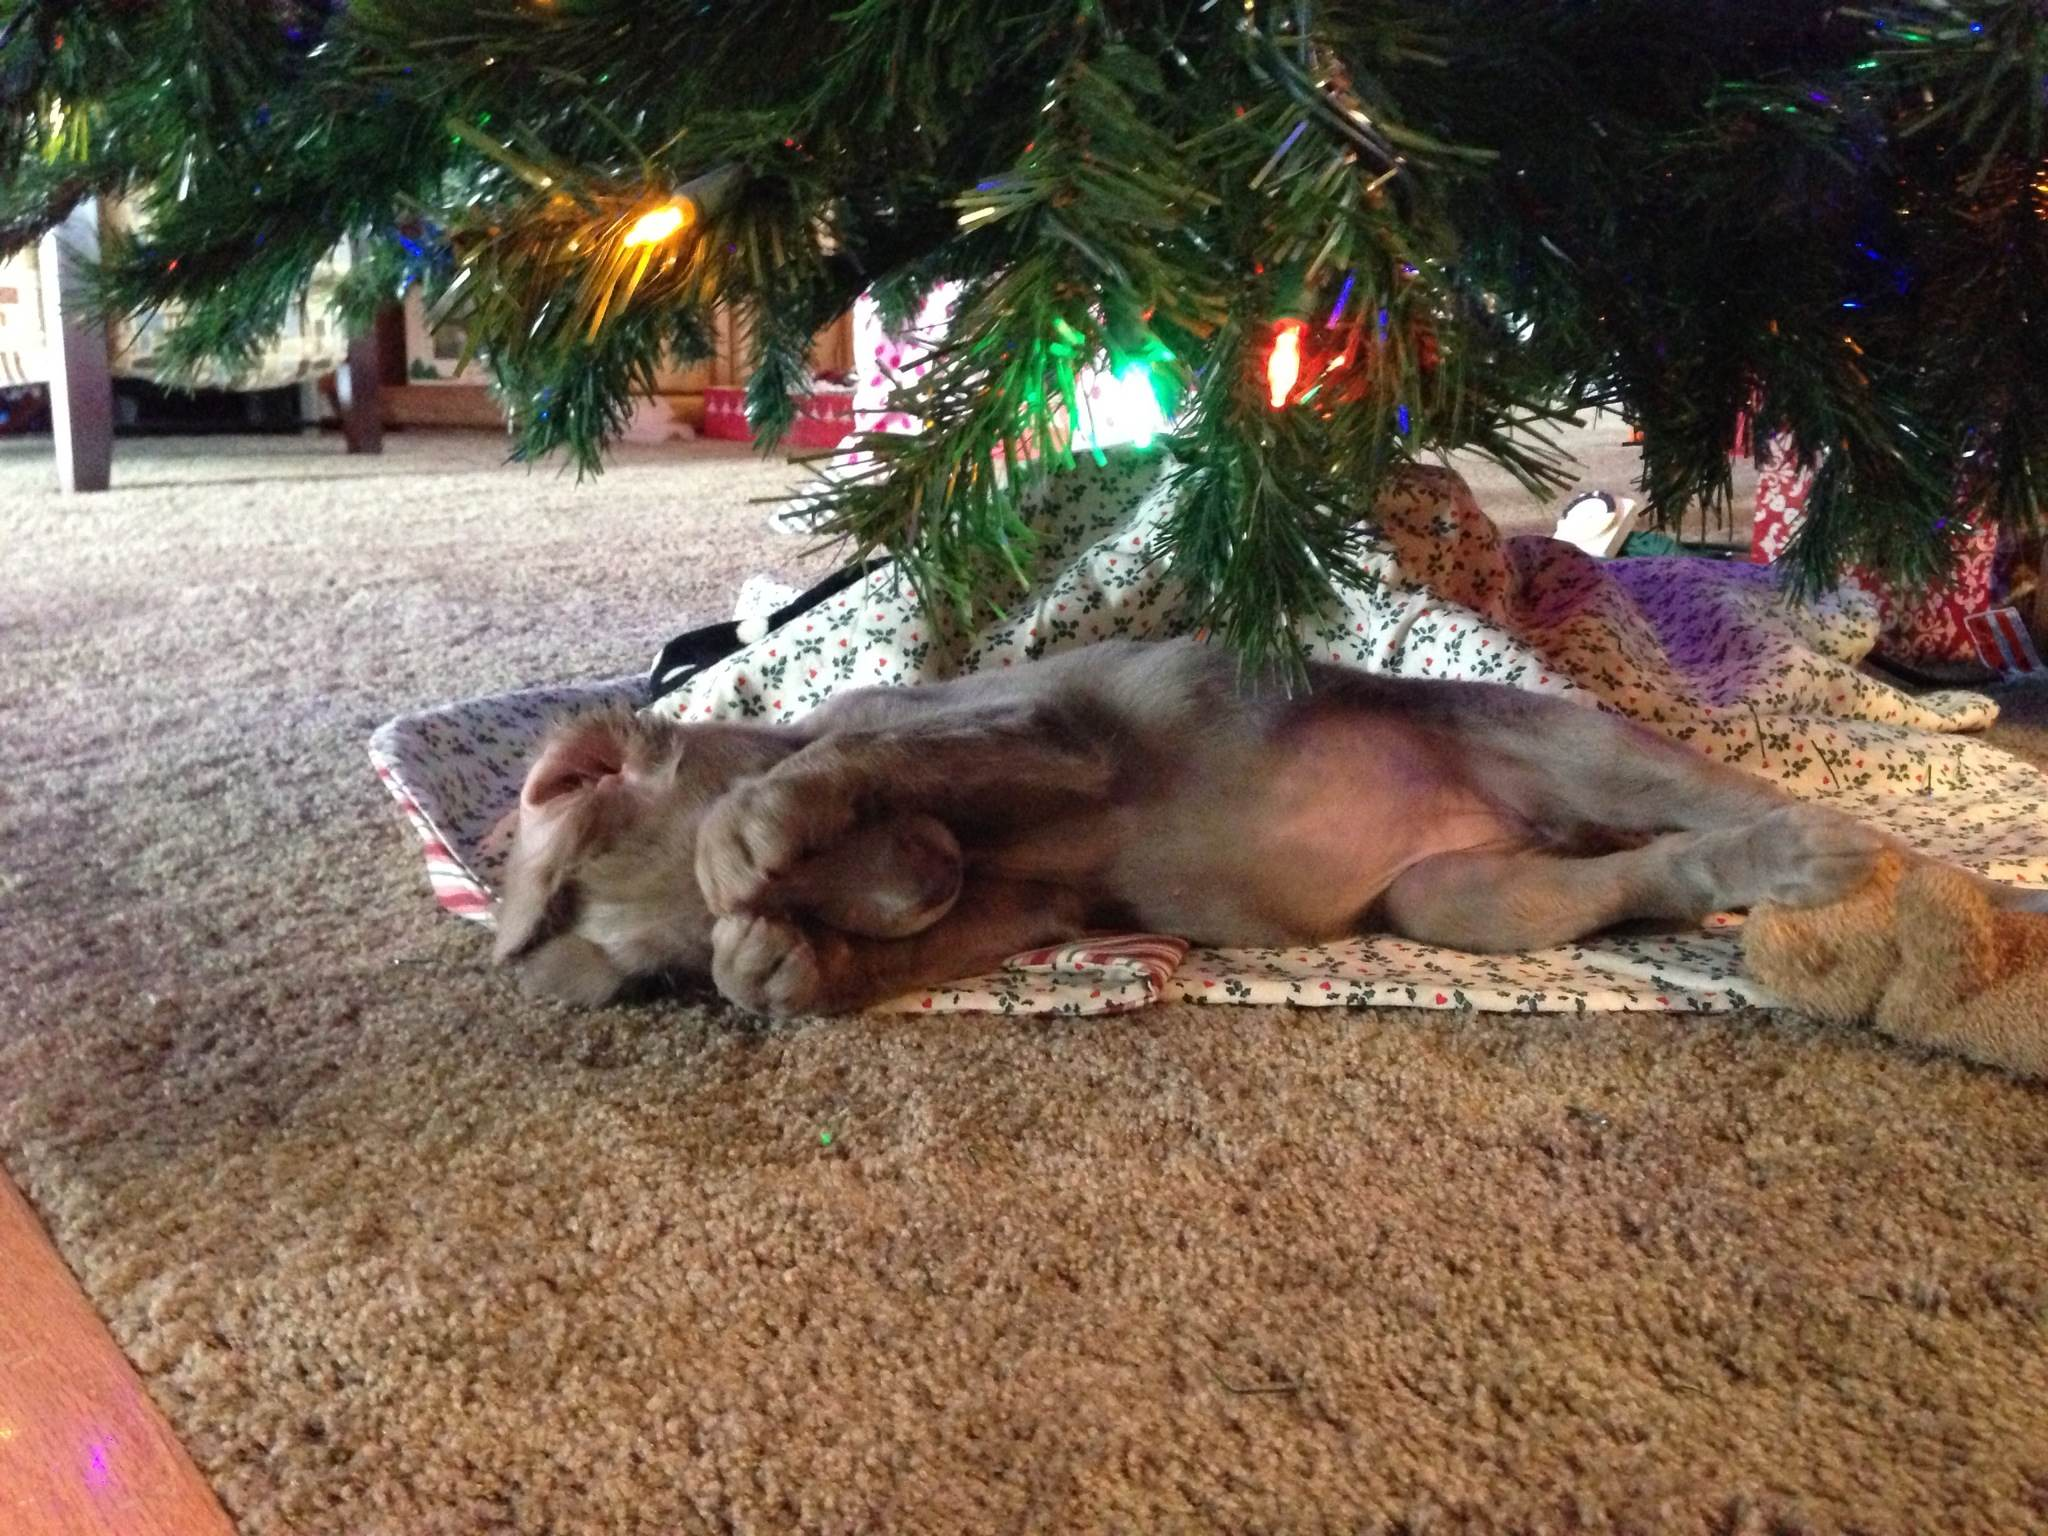 Charlie being cute under the tree